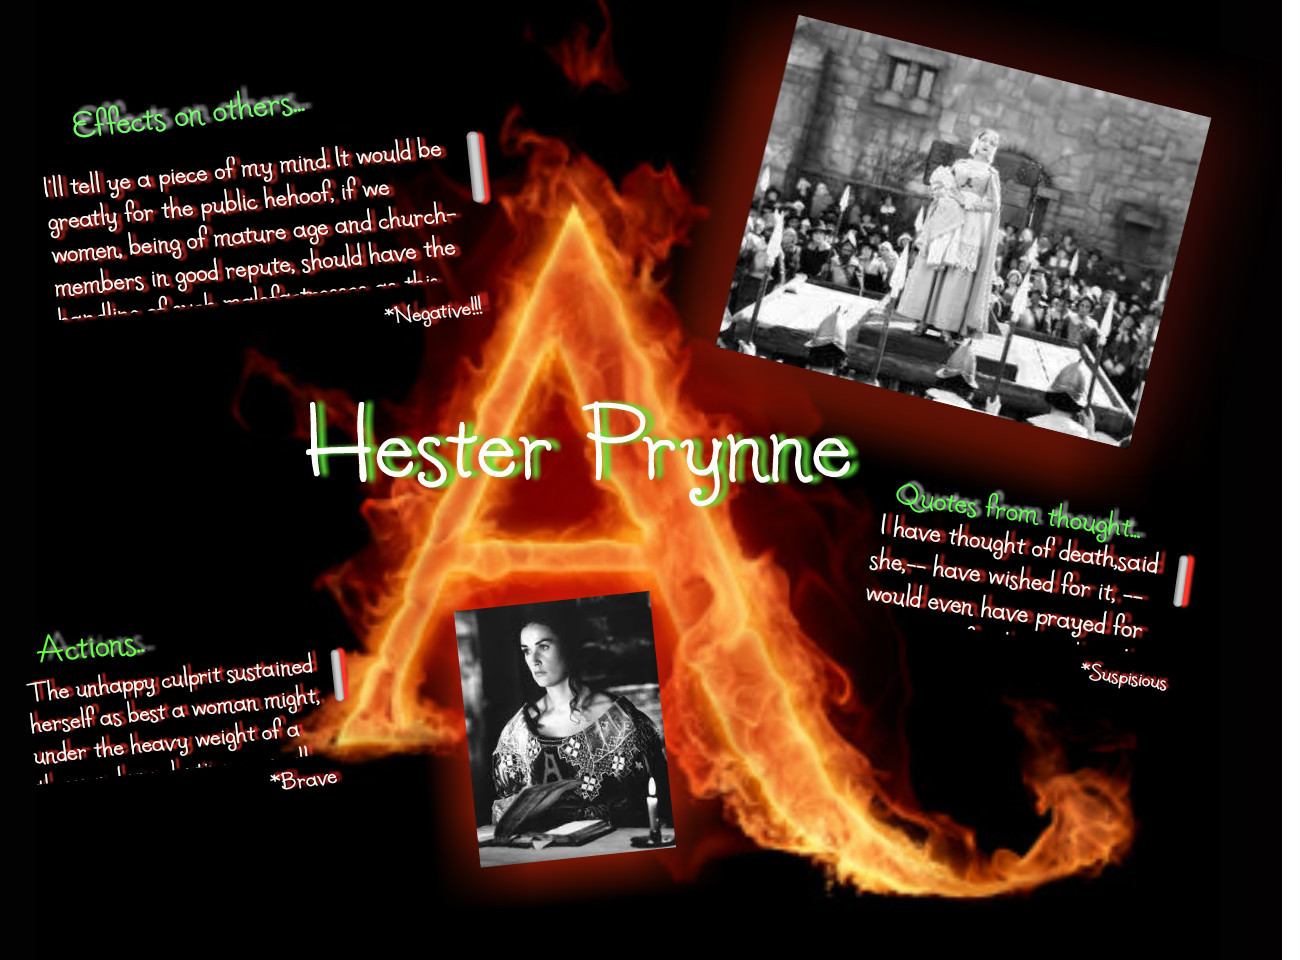 a comparison between reynold and herzog in hester prynne